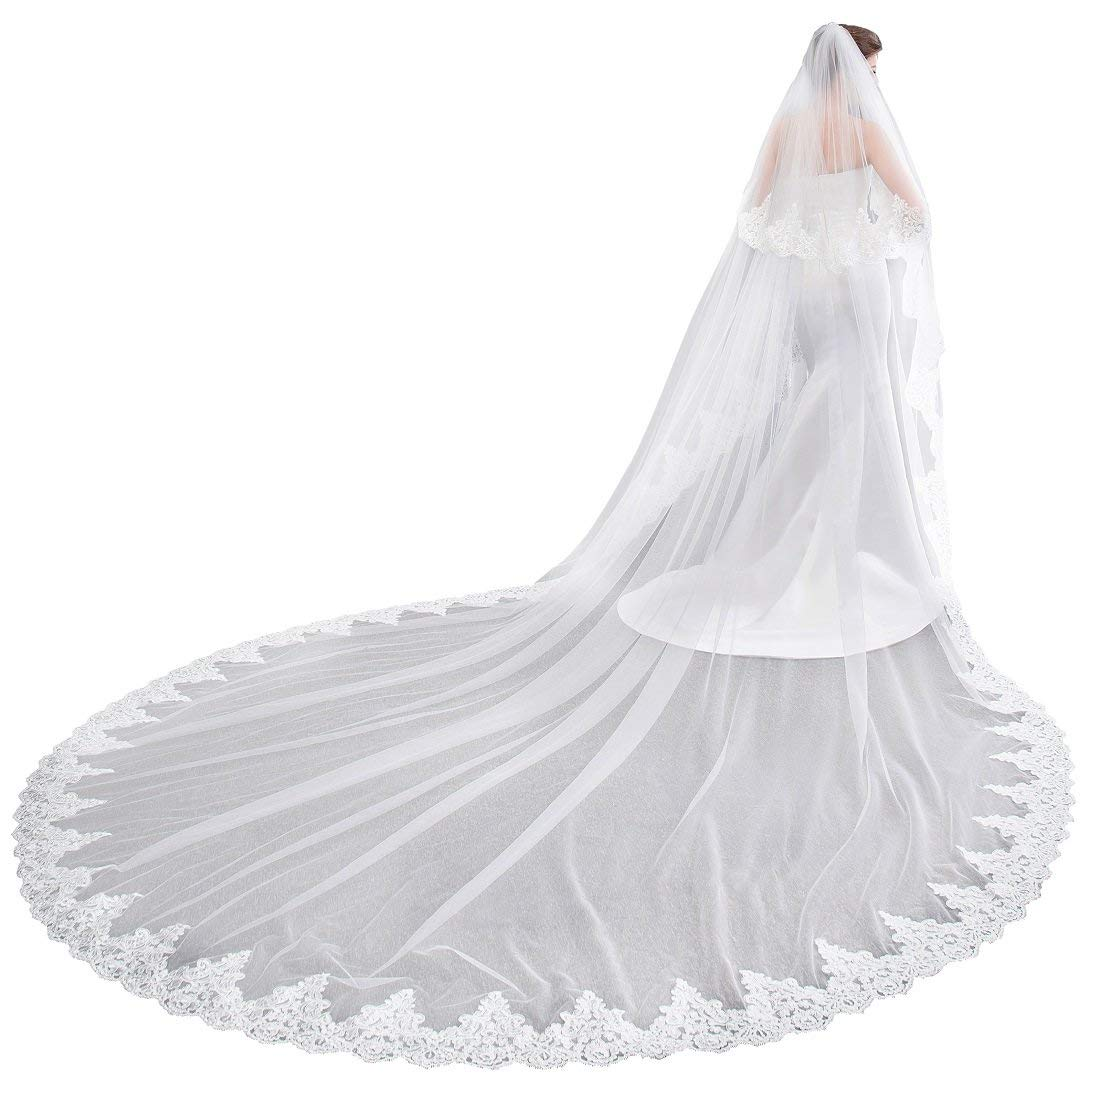 Bmwife Women's 2 Tier Cathedral Lace Wedding Bridal Veil With Comb (White) by Bmwife